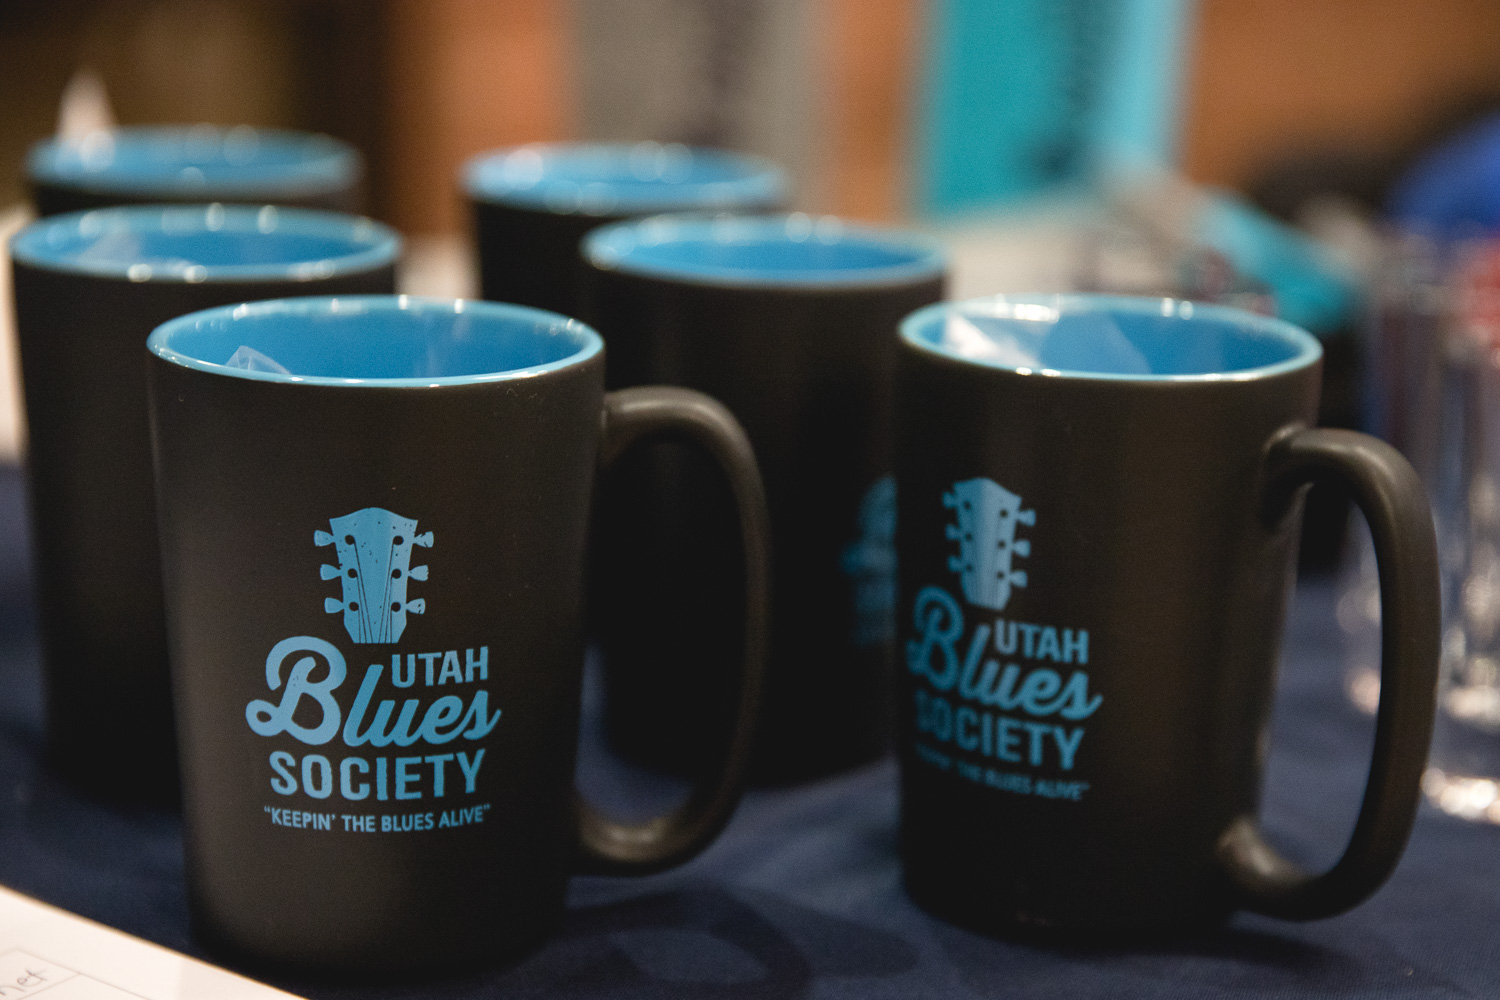 Utah Blues Society also has some black and blue mugs for sale at their table. Photo: @Lmsorenson.net